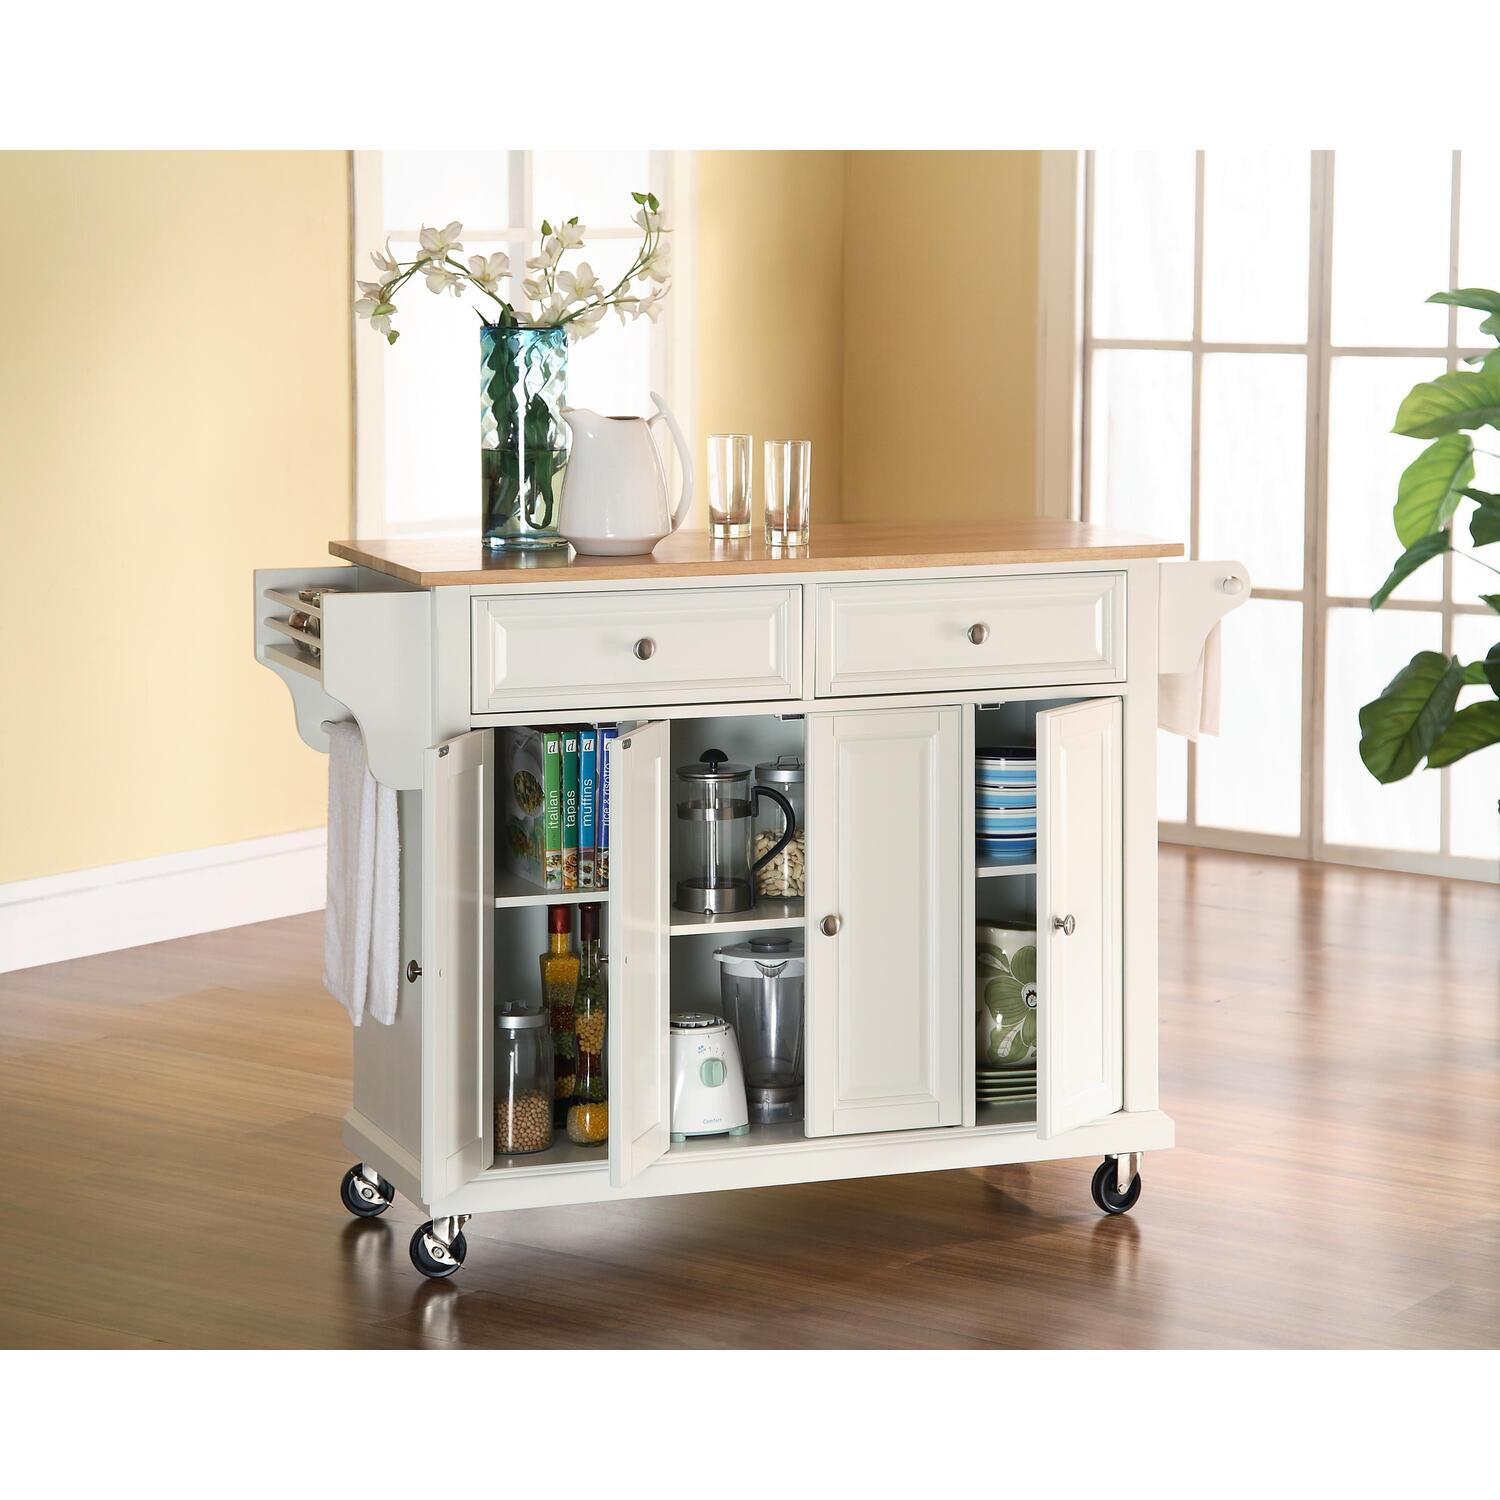 crosley kitchen cart island by oj commerce 369 00 460 00 portable kitchen islands and carts on hayneedle kitchen